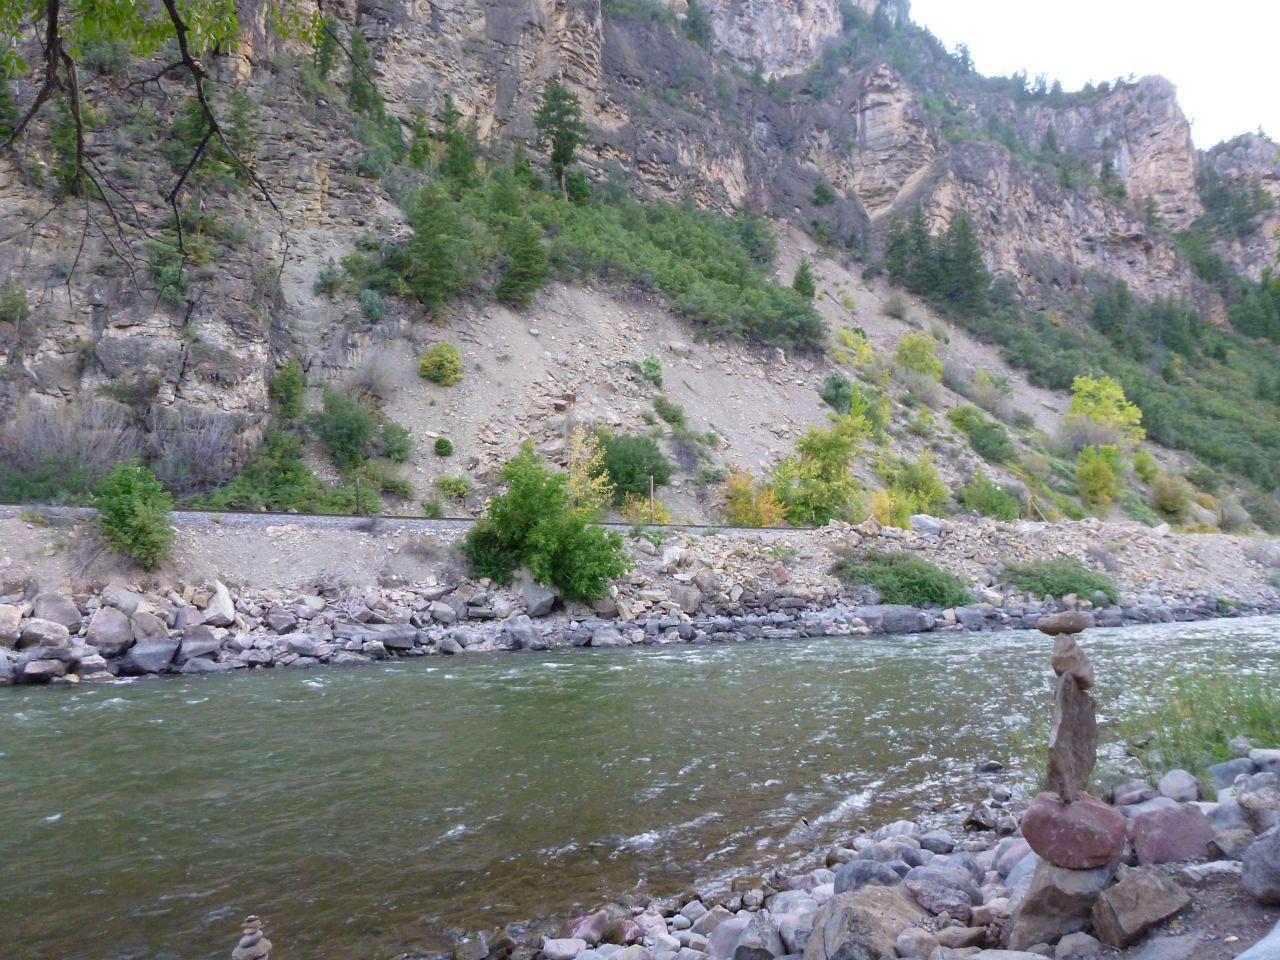 The River Runs Along The Lower Part Of The Campground